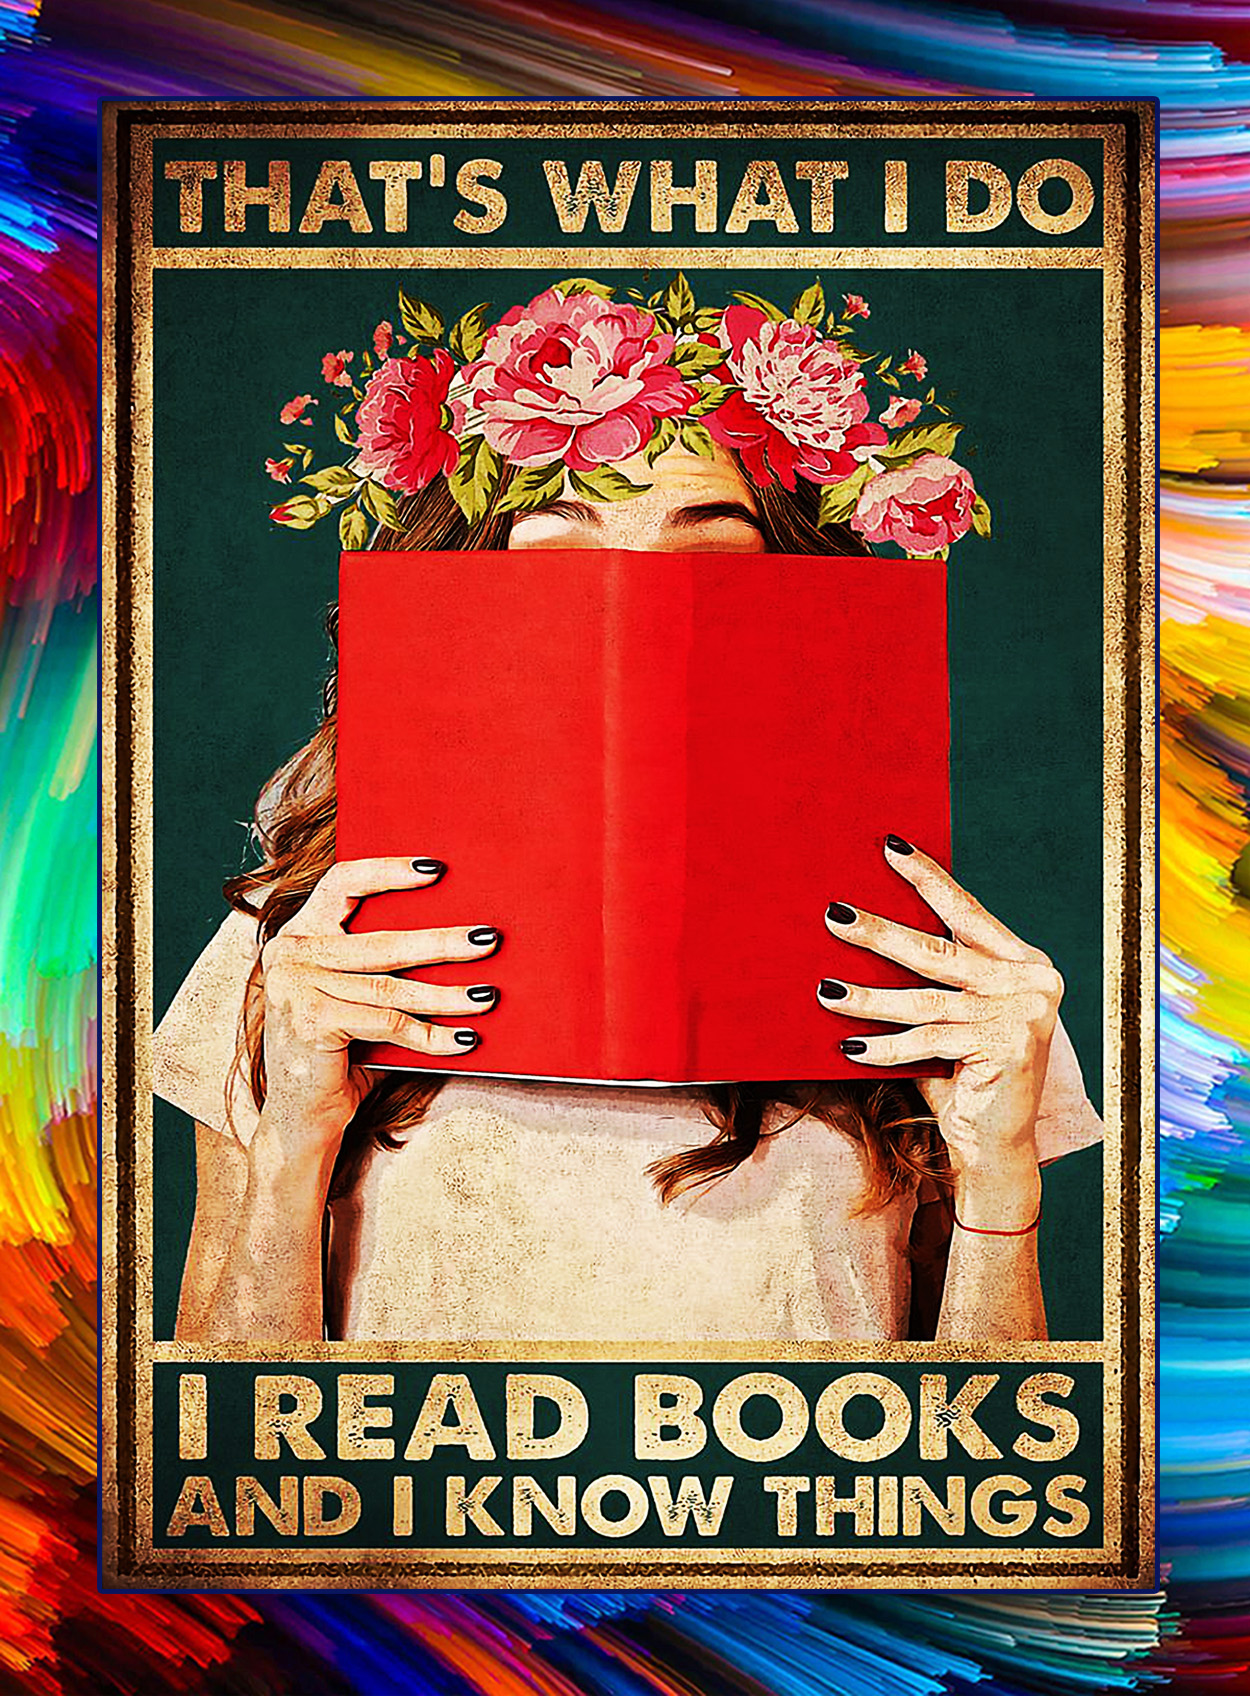 Girl that's what i do i read book and i know things poster - A2